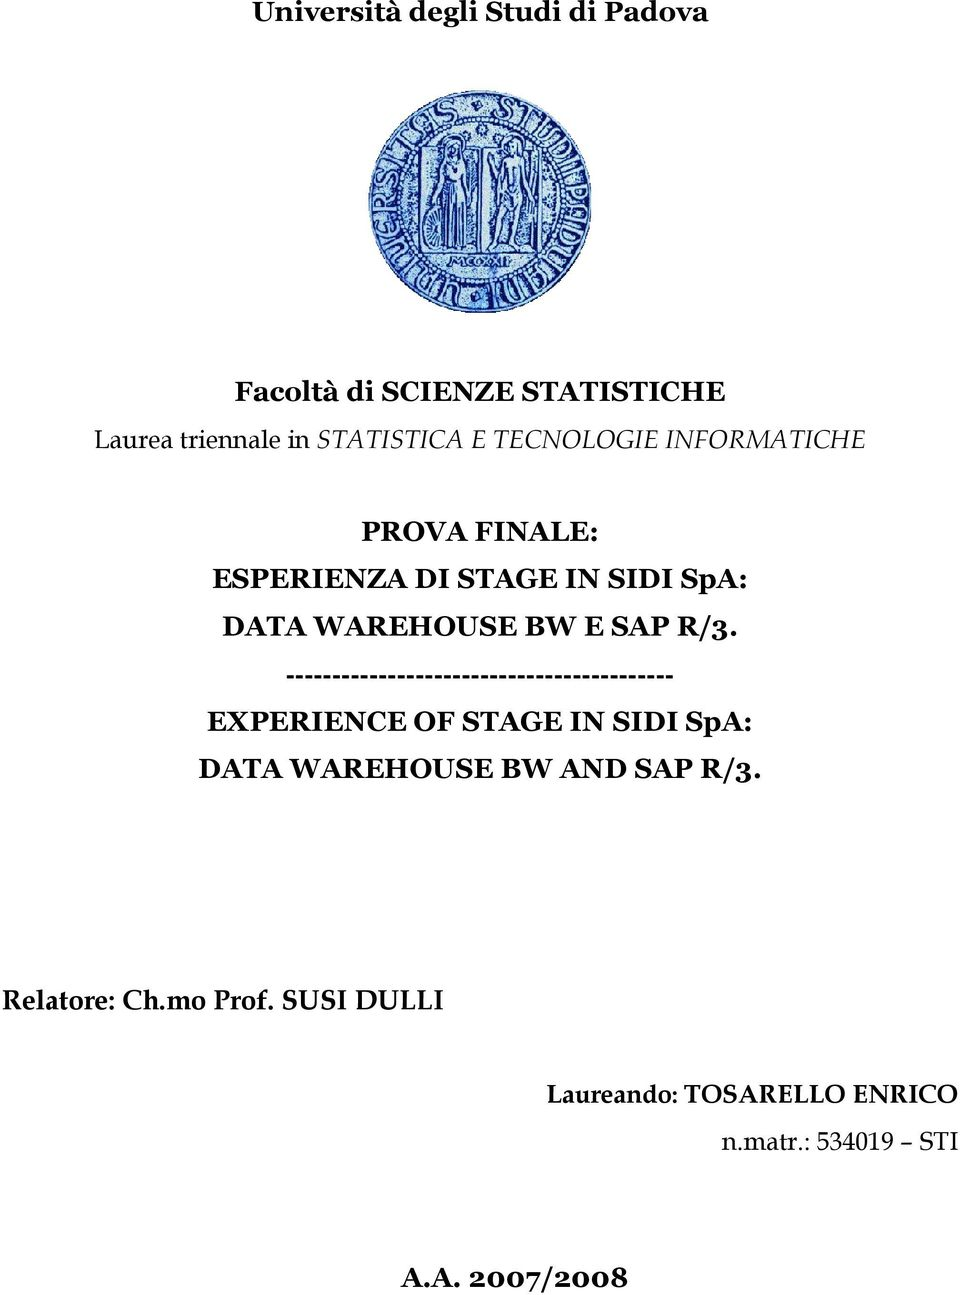 ------------------------------------------ EXPERIENCE OF STAGE IN SIDI SpA: DATA WAREHOUSE BW AND